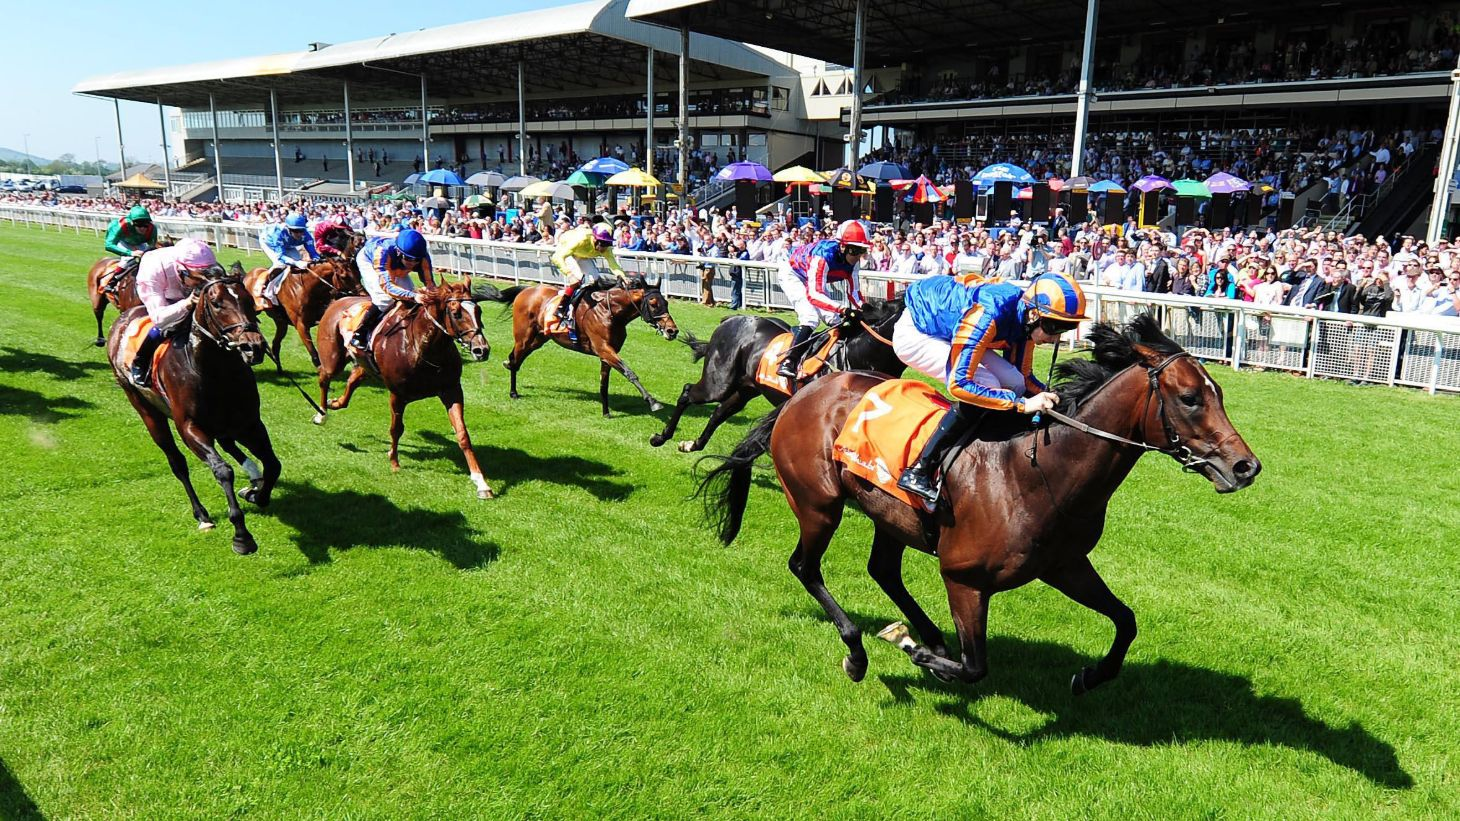 Feel the excitement of horse racing at The Curragh